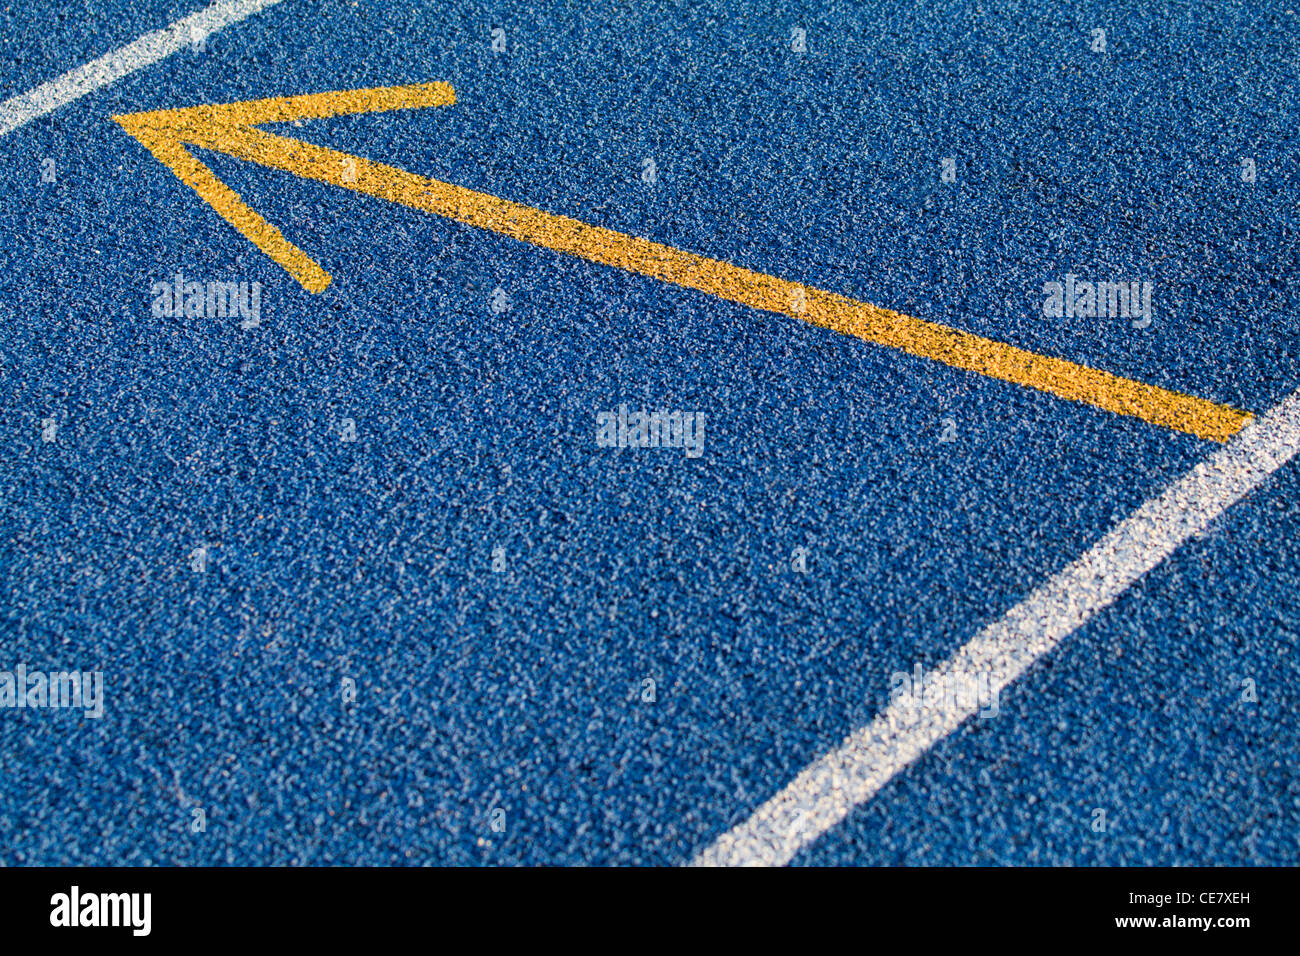 Blue tartan surface with yellow arrow - Stock Image